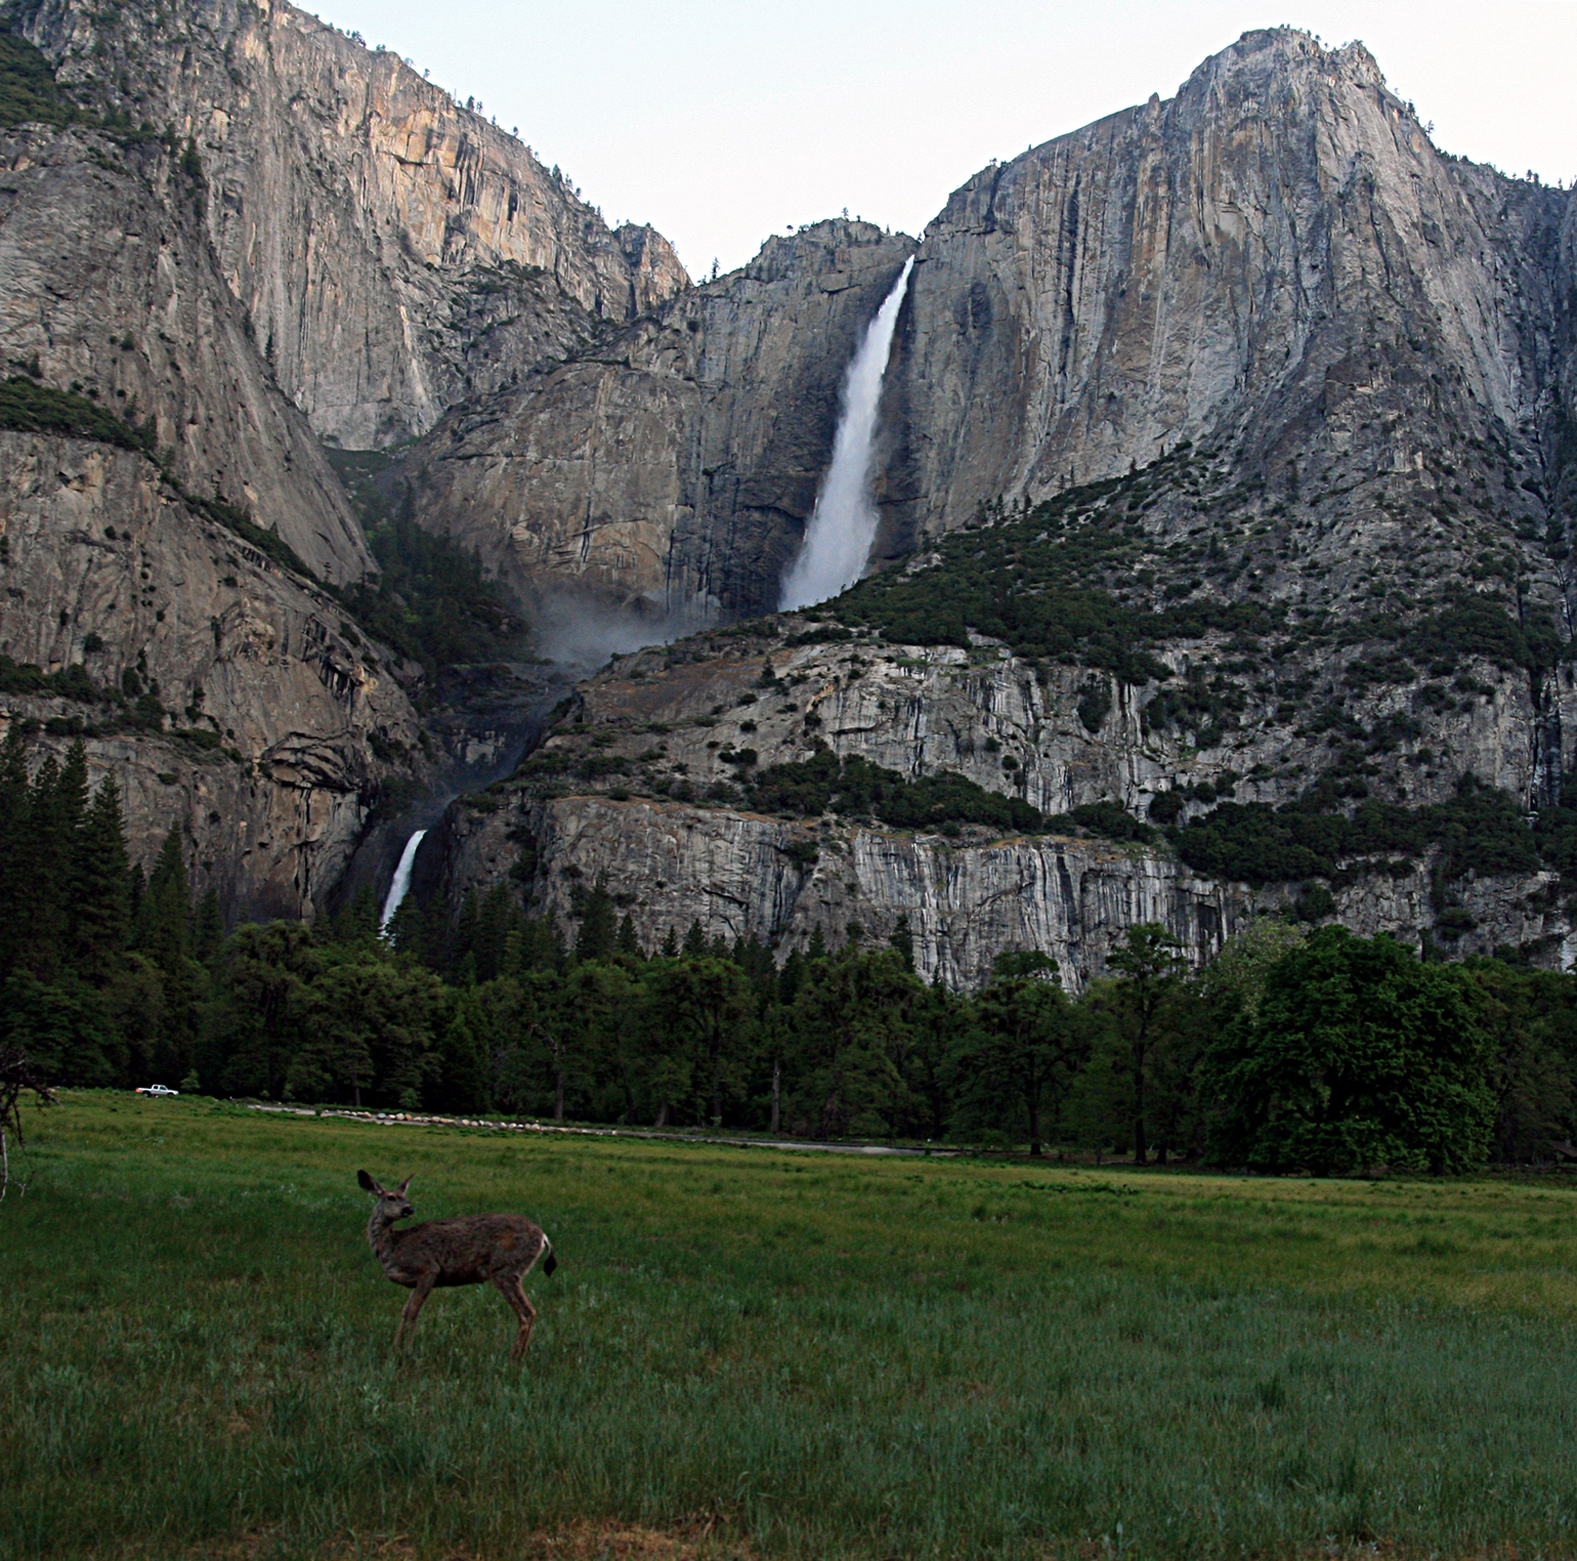 Globetrotting A To Z: Yosemite